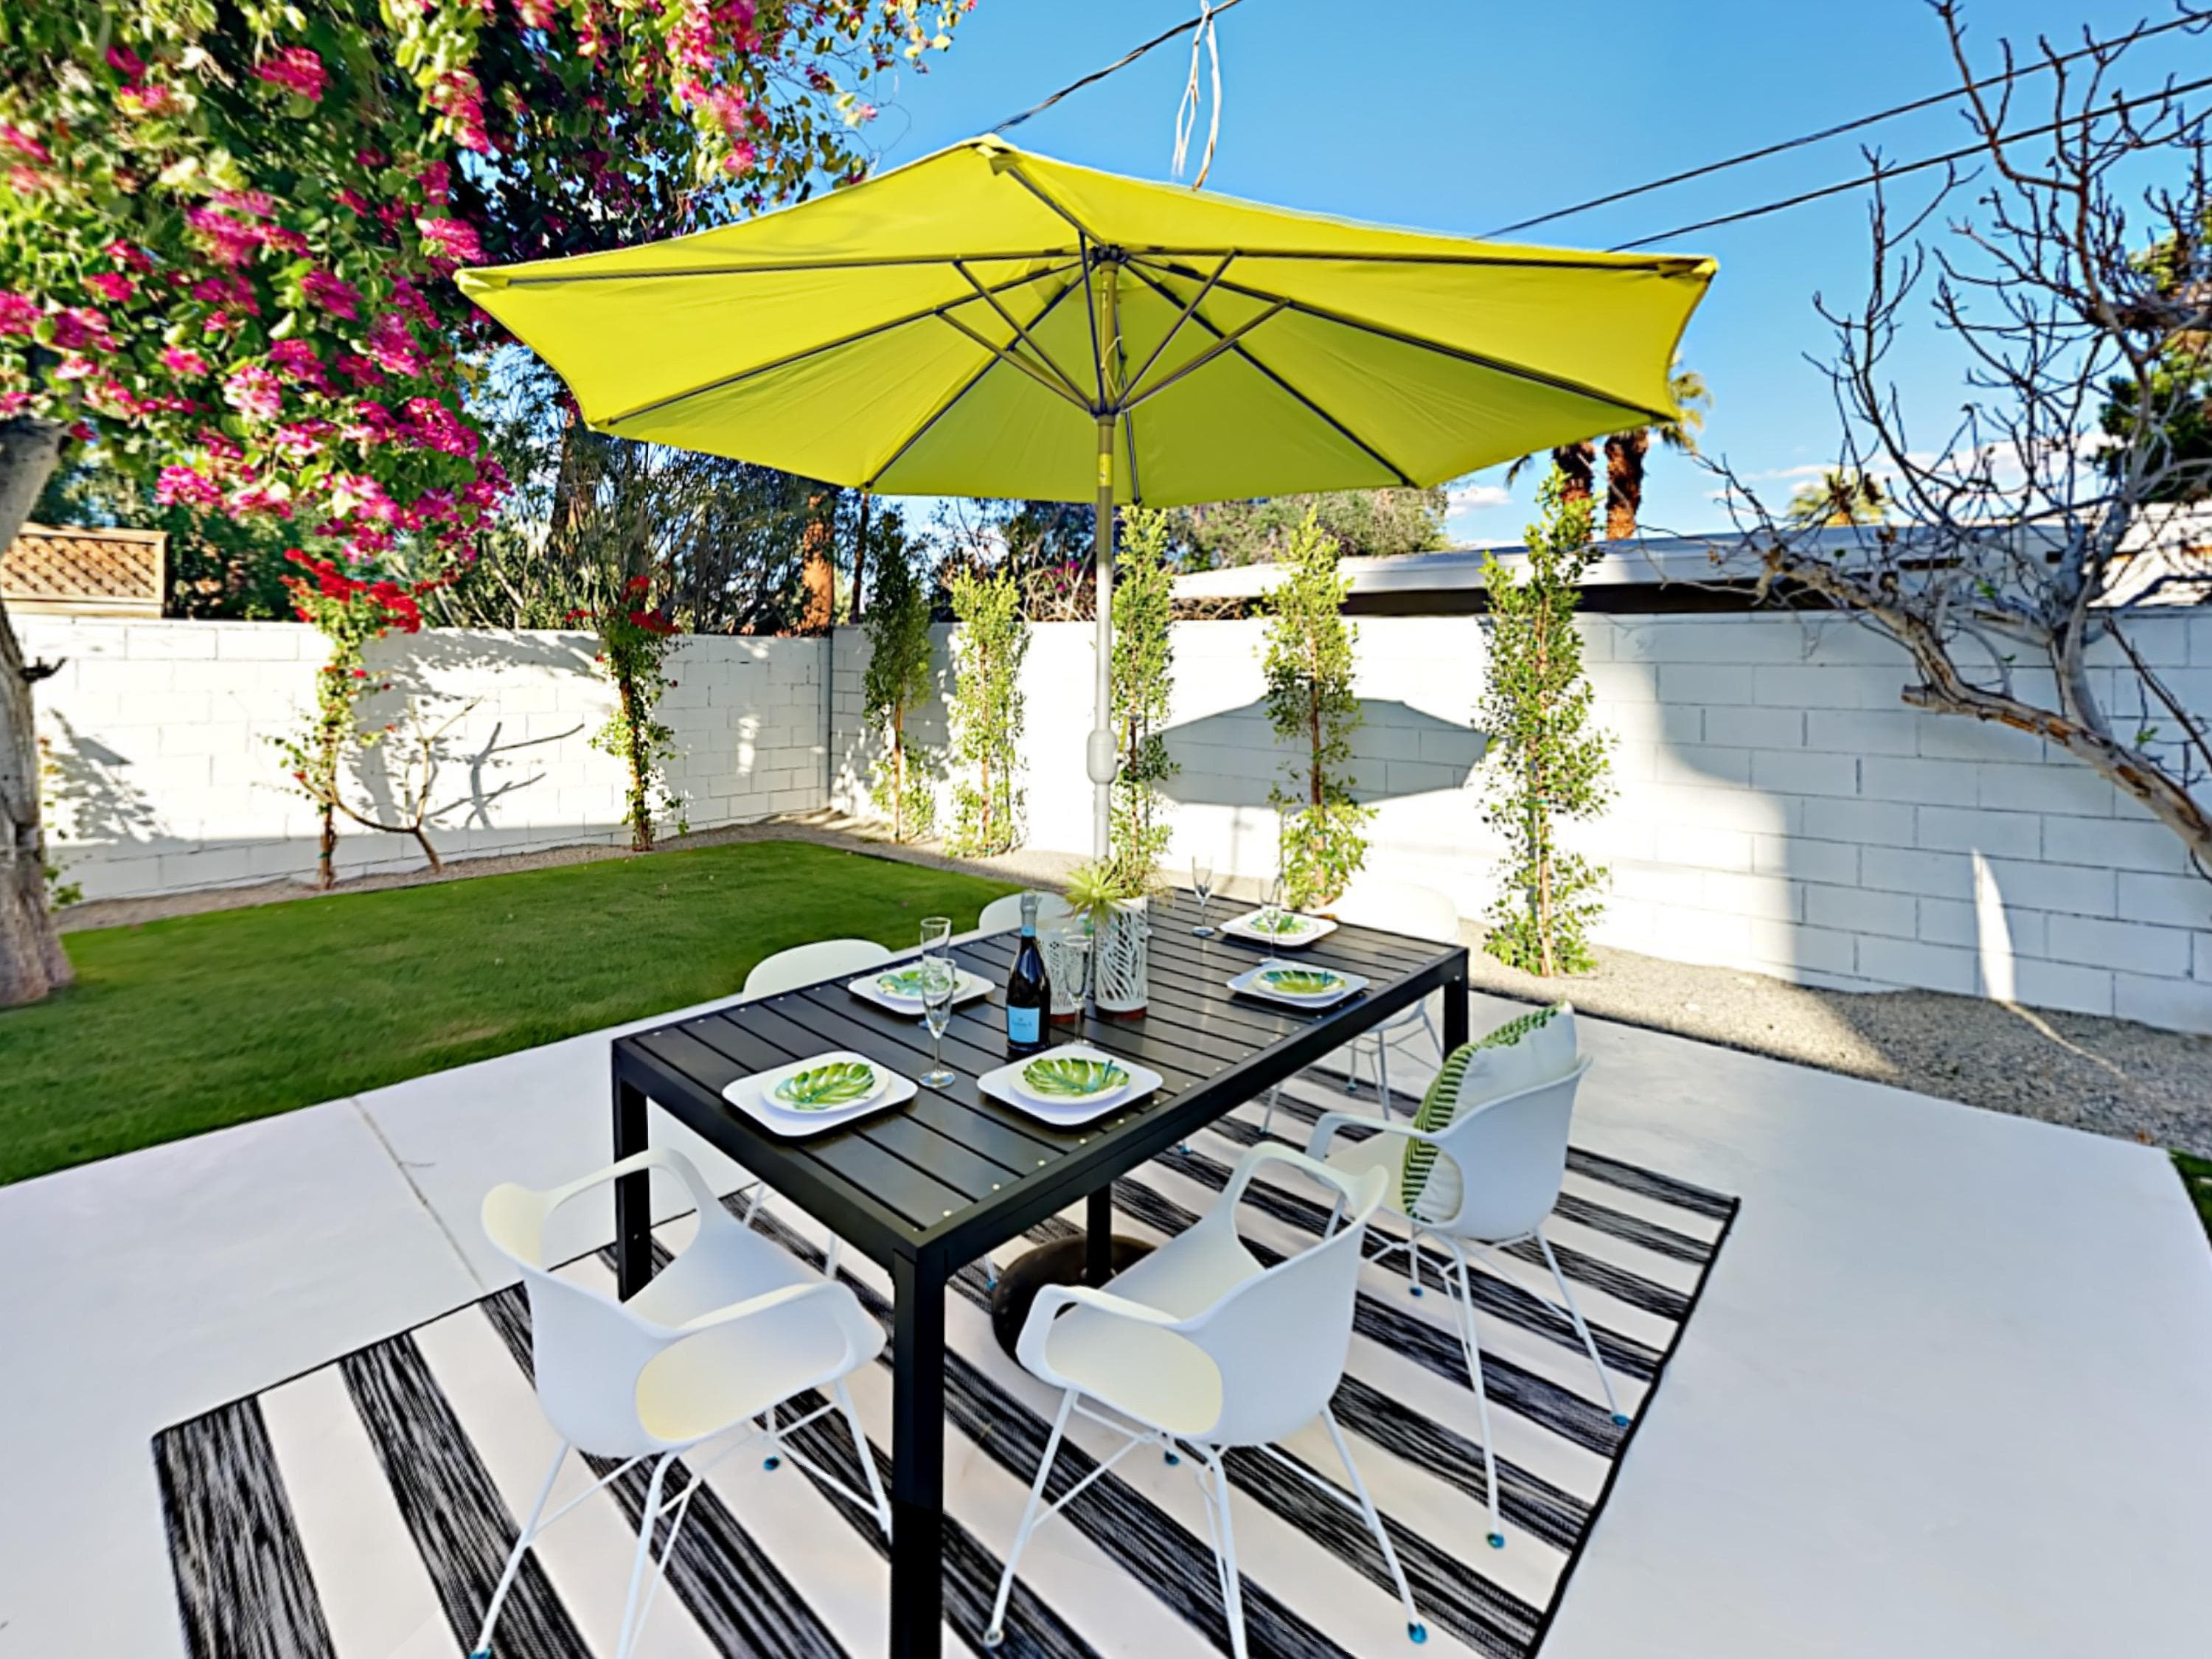 Dine al fresco at the 6-person table under the shade of the large umbrella.